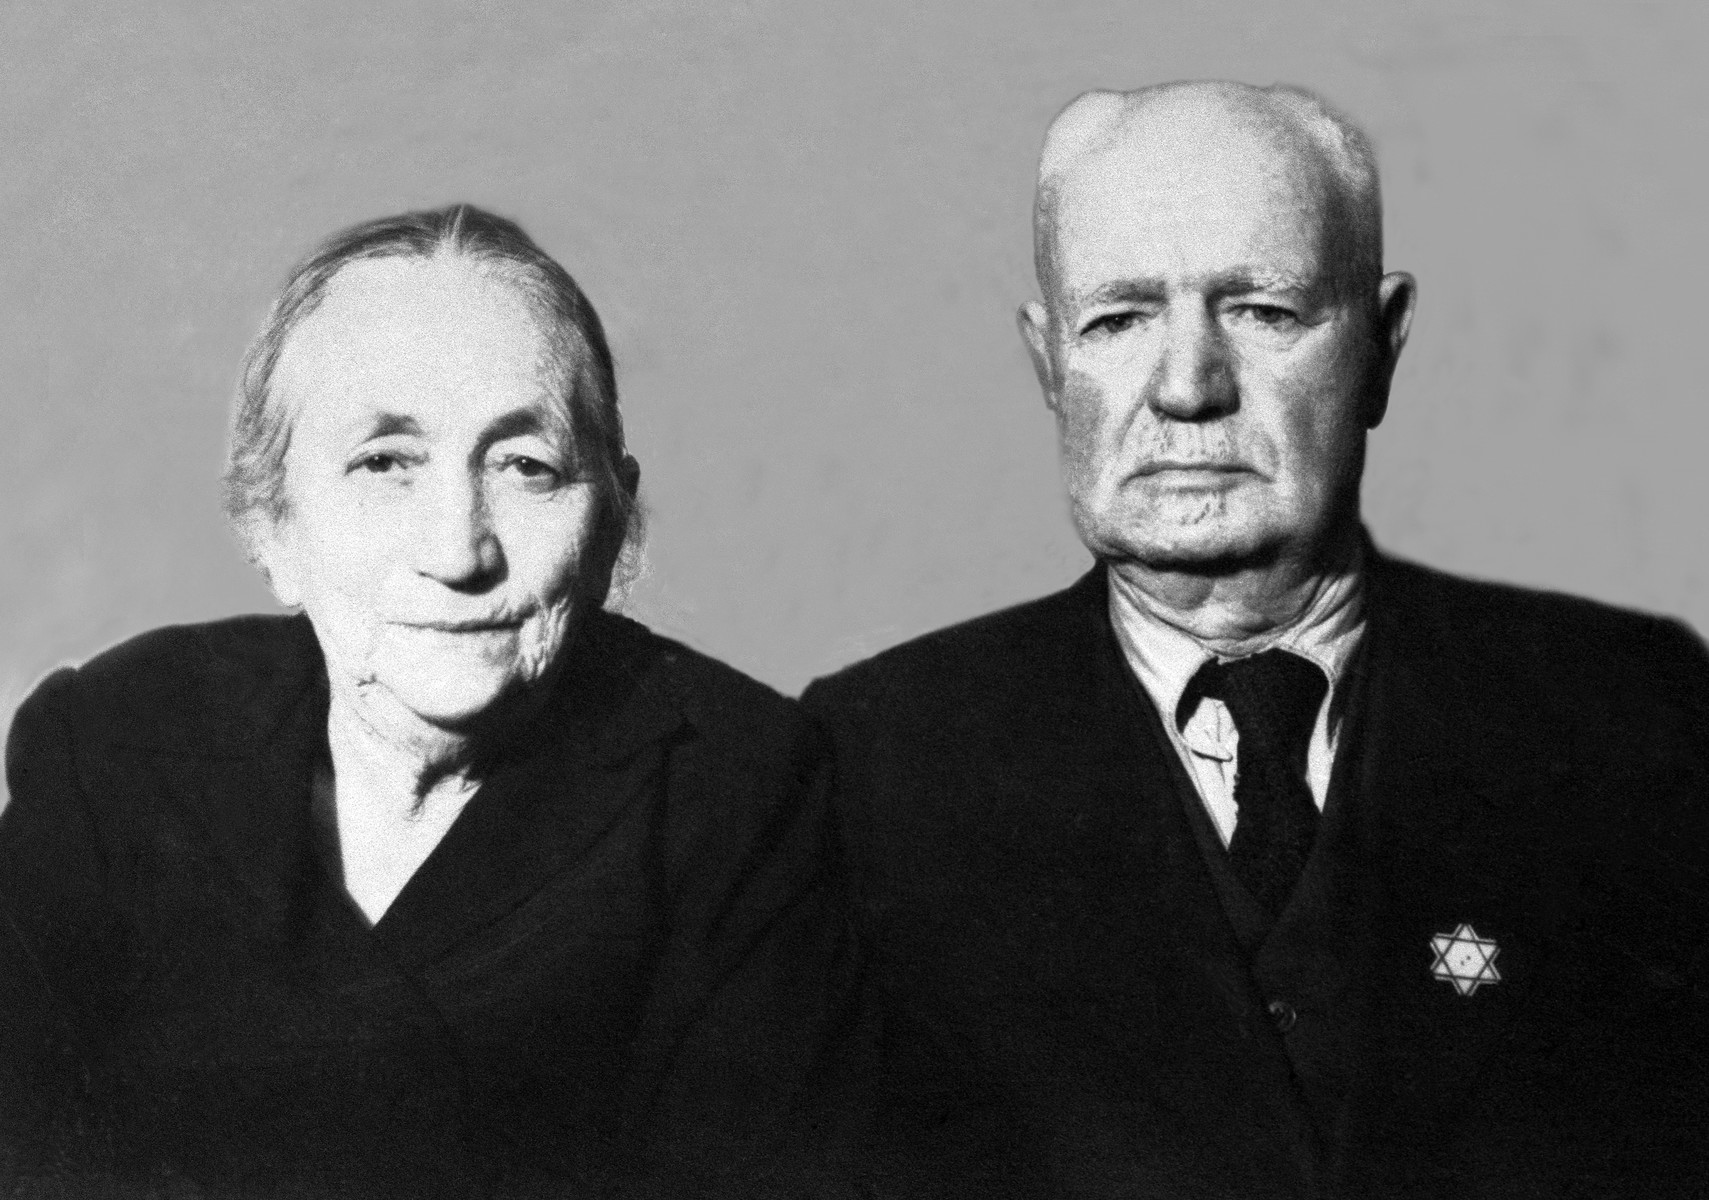 Portrait of an elderly Jewish couple in Kyustendil, Bulgaria, following their expulsion from the capital, Sofia.  Pictured are Miriam and Pinkas Baruch.  During the period of their exile in the provinces, the members of extended Baruch family lived in the home of Miriam and Pinkas Baruch, who had retained their house in Kyustendil after moving to Sofia in the 1930s.